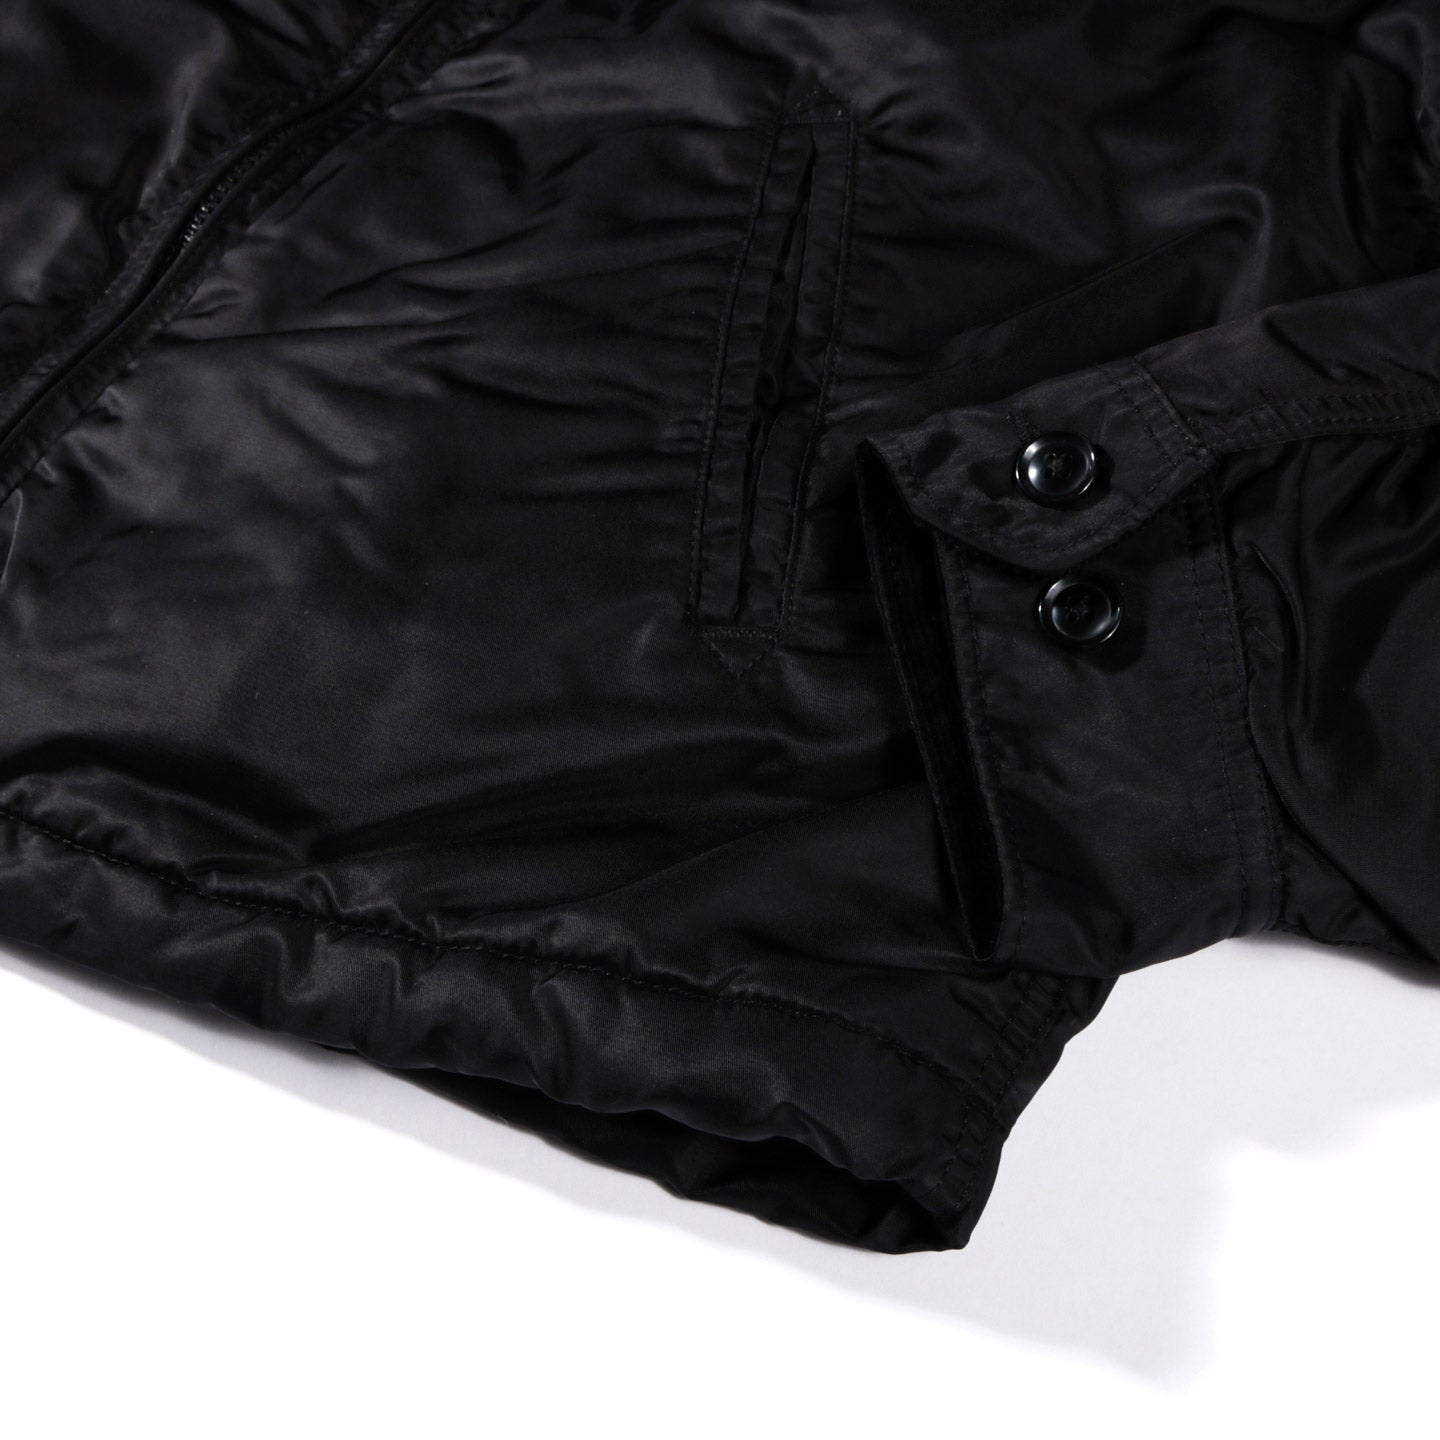 ENGINEERED GARMENTS DRIVER JACKET BLACK FLIGHT SATIN NYLON